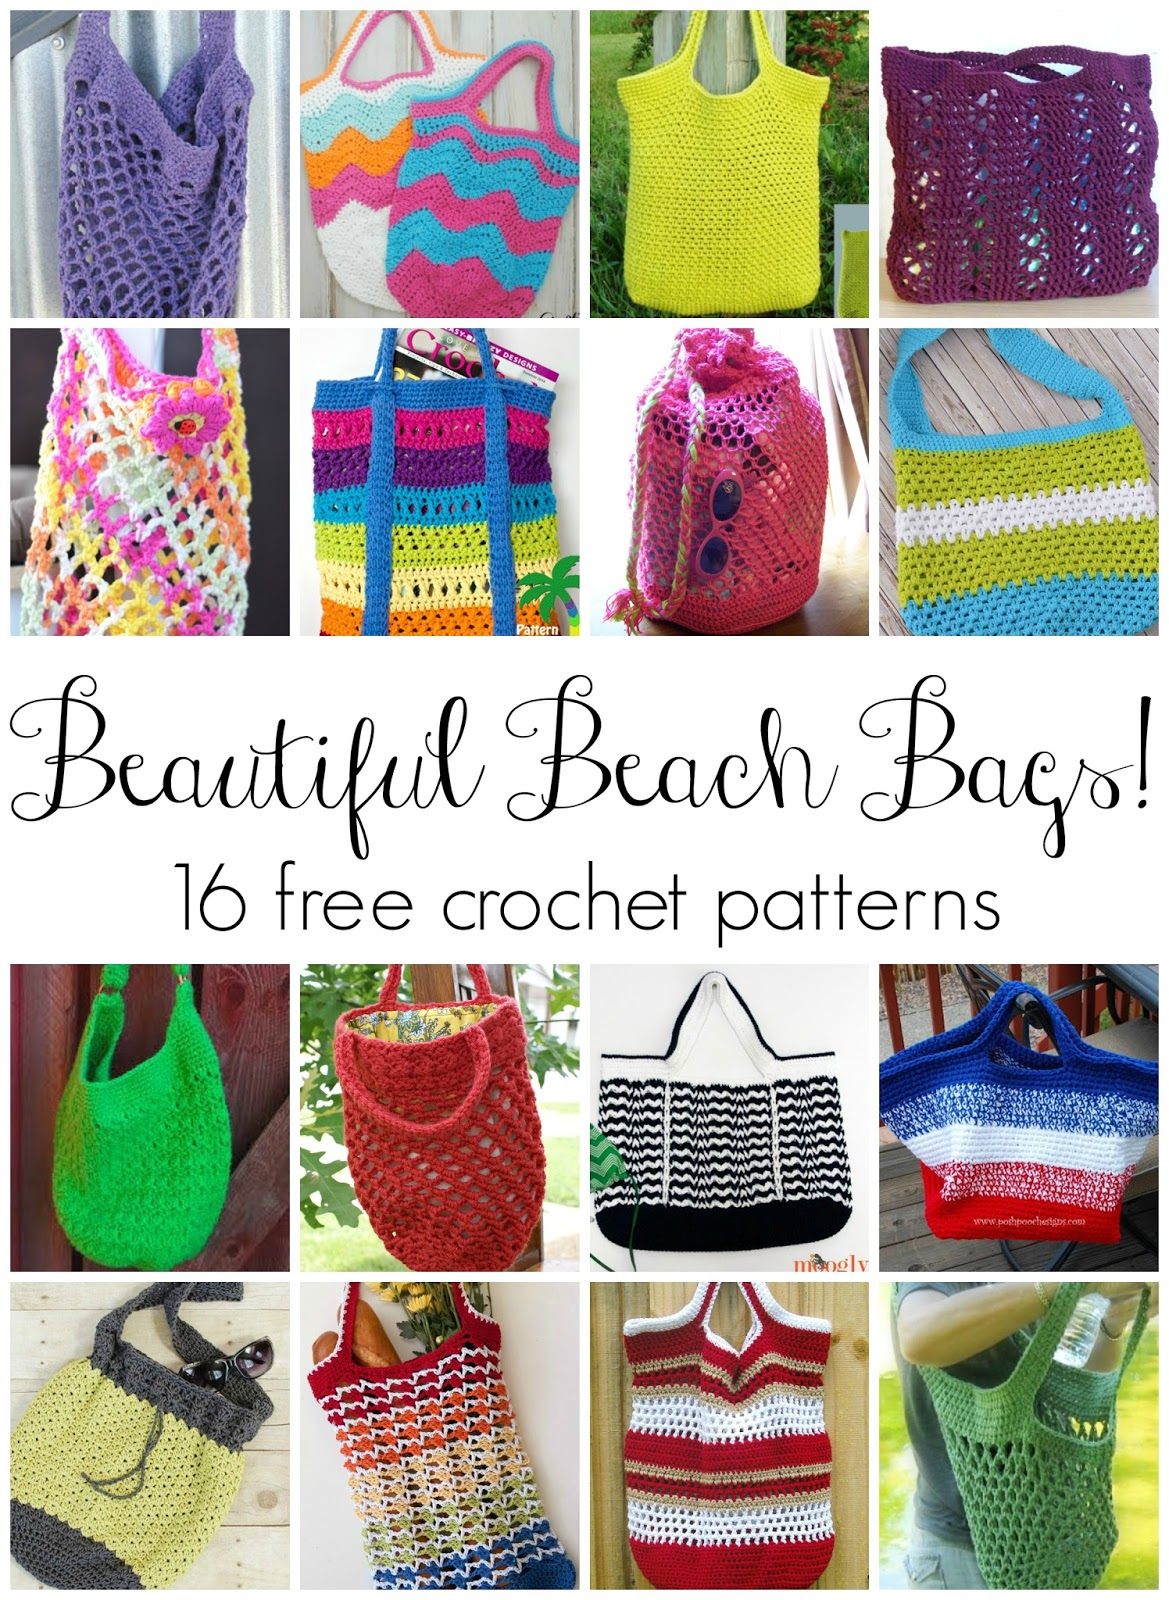 Fiber flux beautiful beach bags 16 free crochet patterns beautiful beach bags 16 free crochet patterns bankloansurffo Gallery